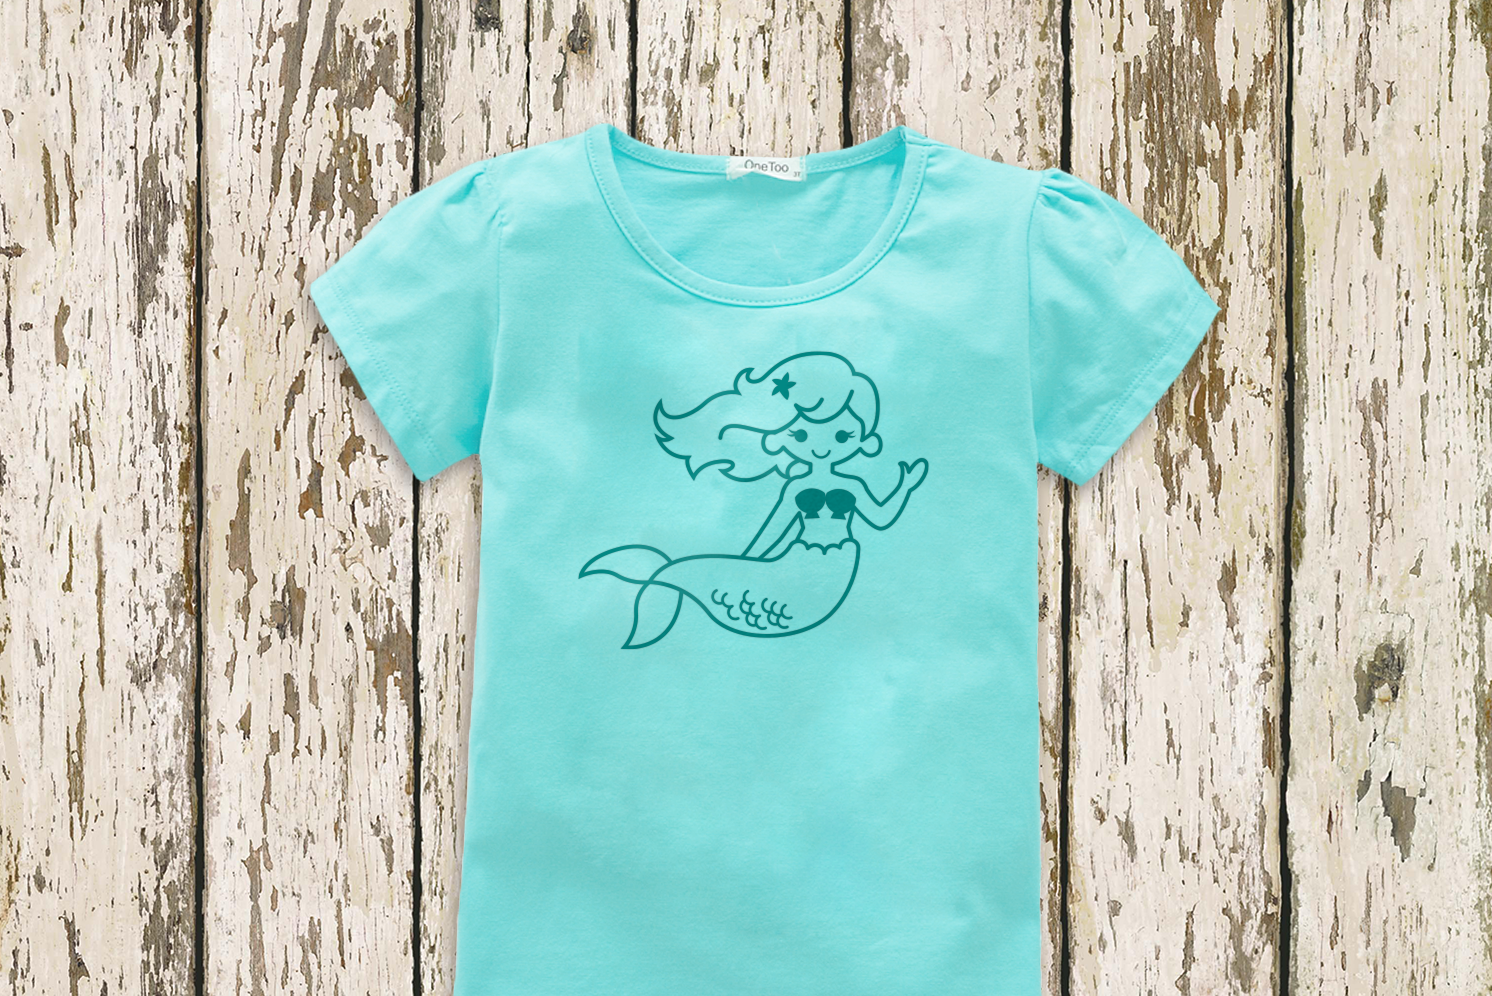 Cute Mermaid SVG File Cutting Template example image 2